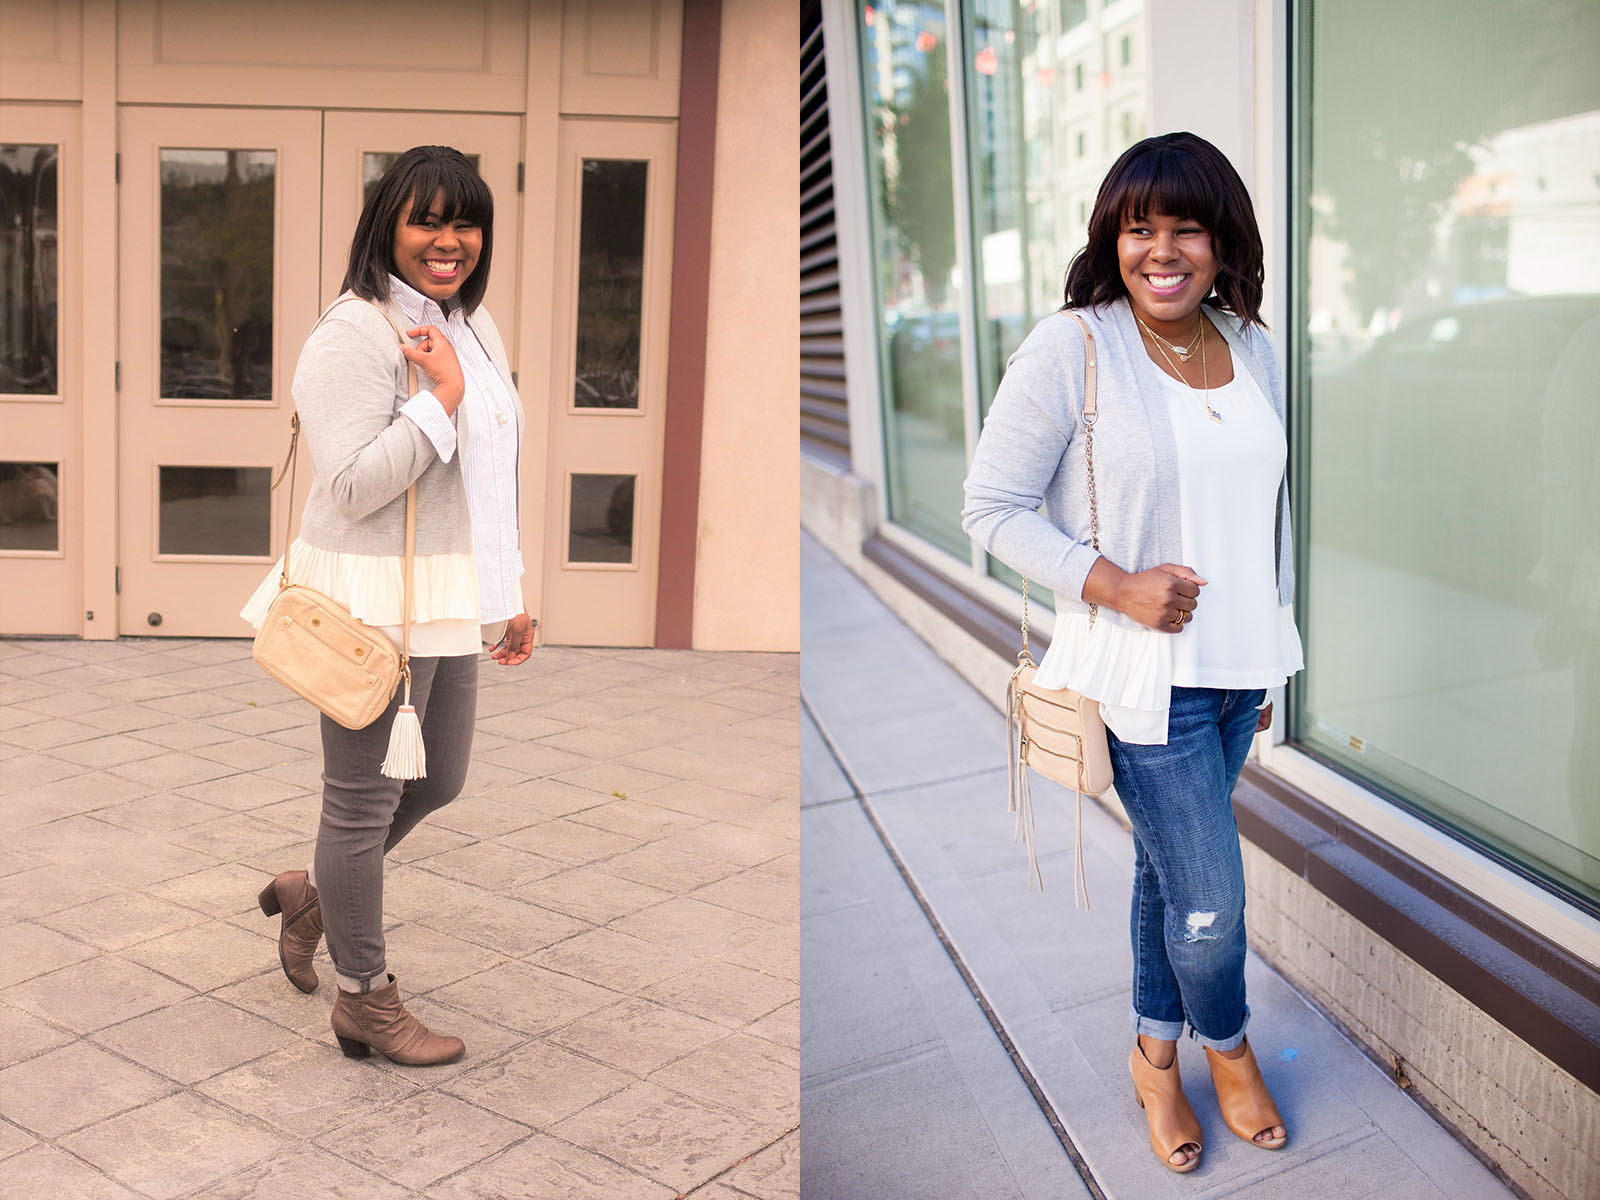 I used to be obsessed with the cardigan! I seriously had one in every material, weight, and color. One day I decided I was over them and I paired down my collection to just the essentials.I made a conscious effort not to buy another with the caveat that I only could if I needed it to complete an outfit.